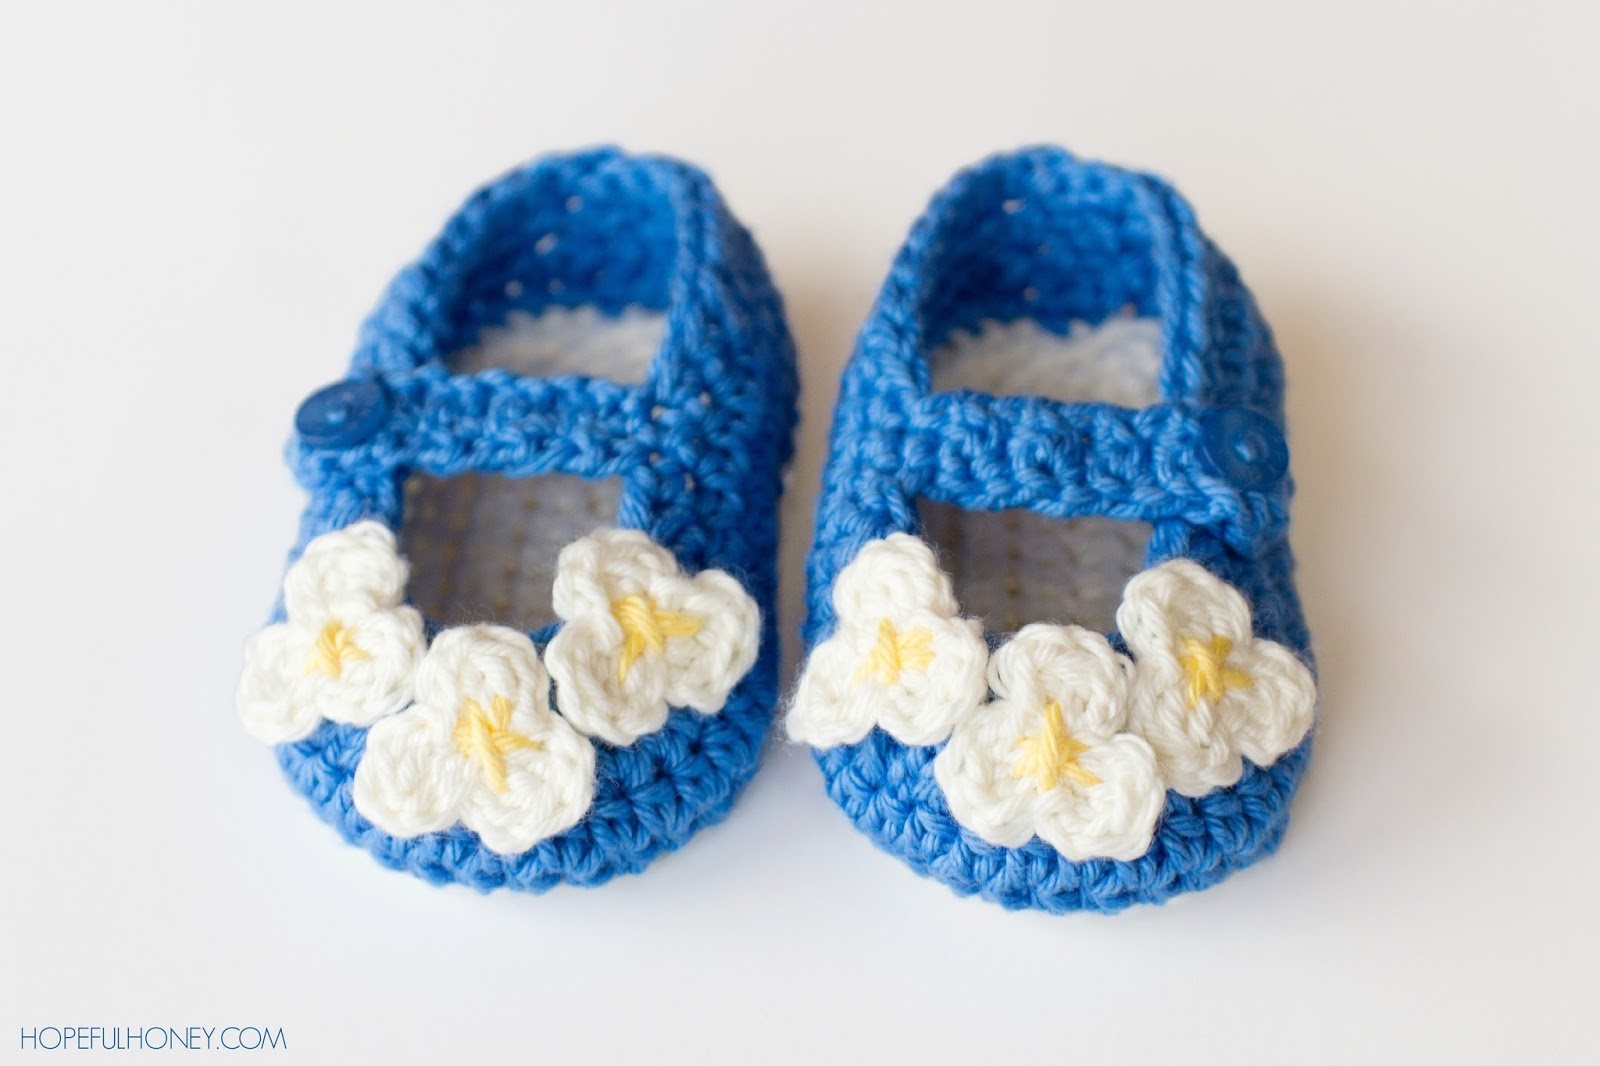 Free Crochet Patterns For Baby Booties Mary Janes : Hopeful Honey Craft, Crochet, Create: Vintage Mary Jane ...